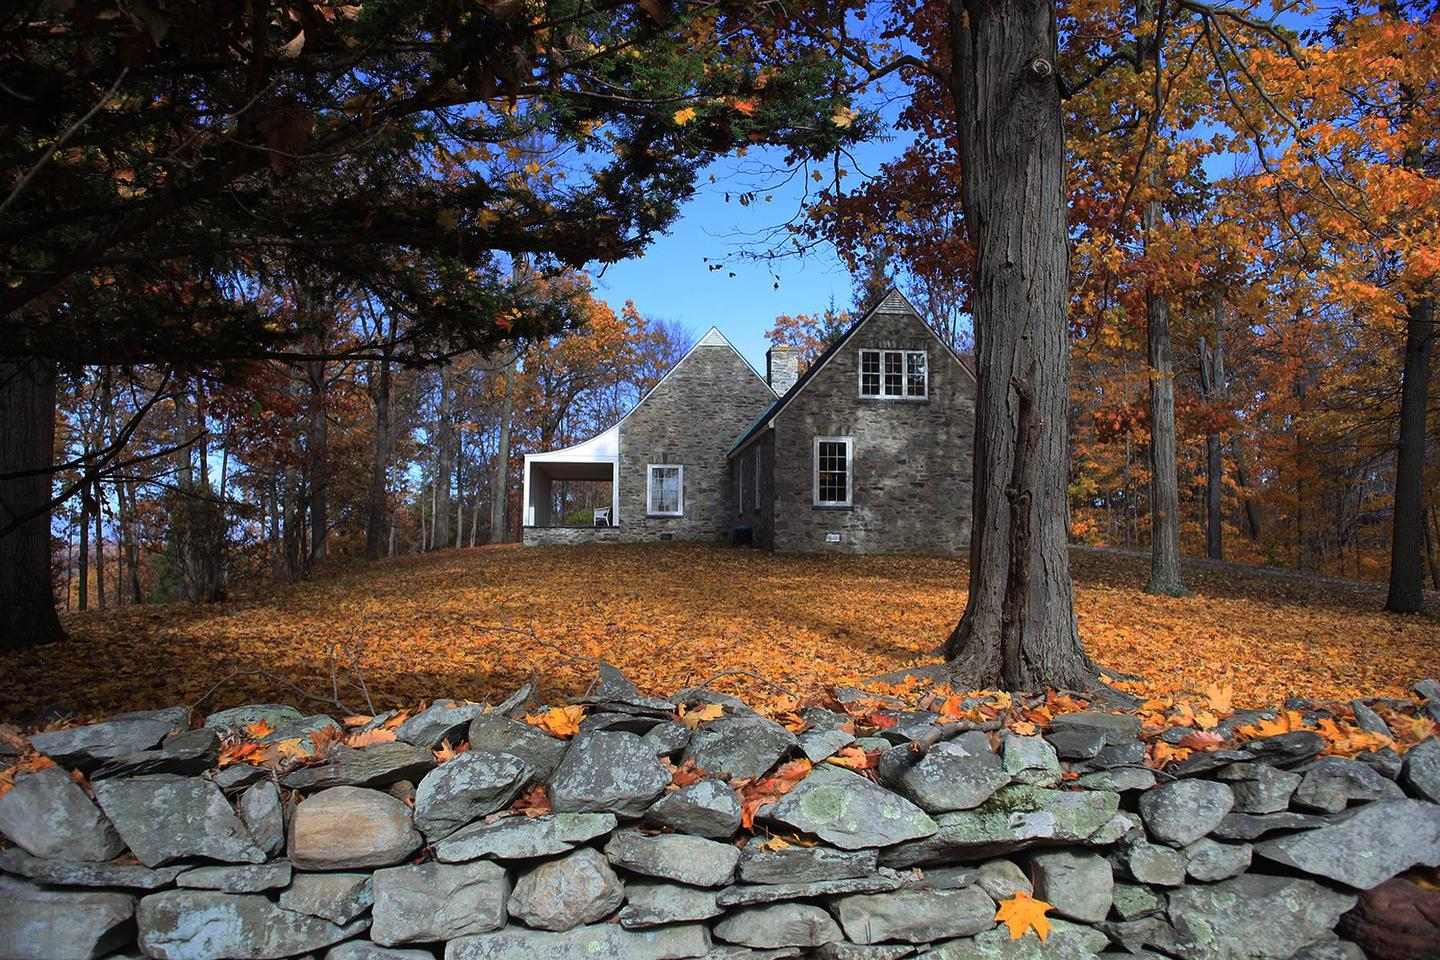 Top Cottage in Autumn